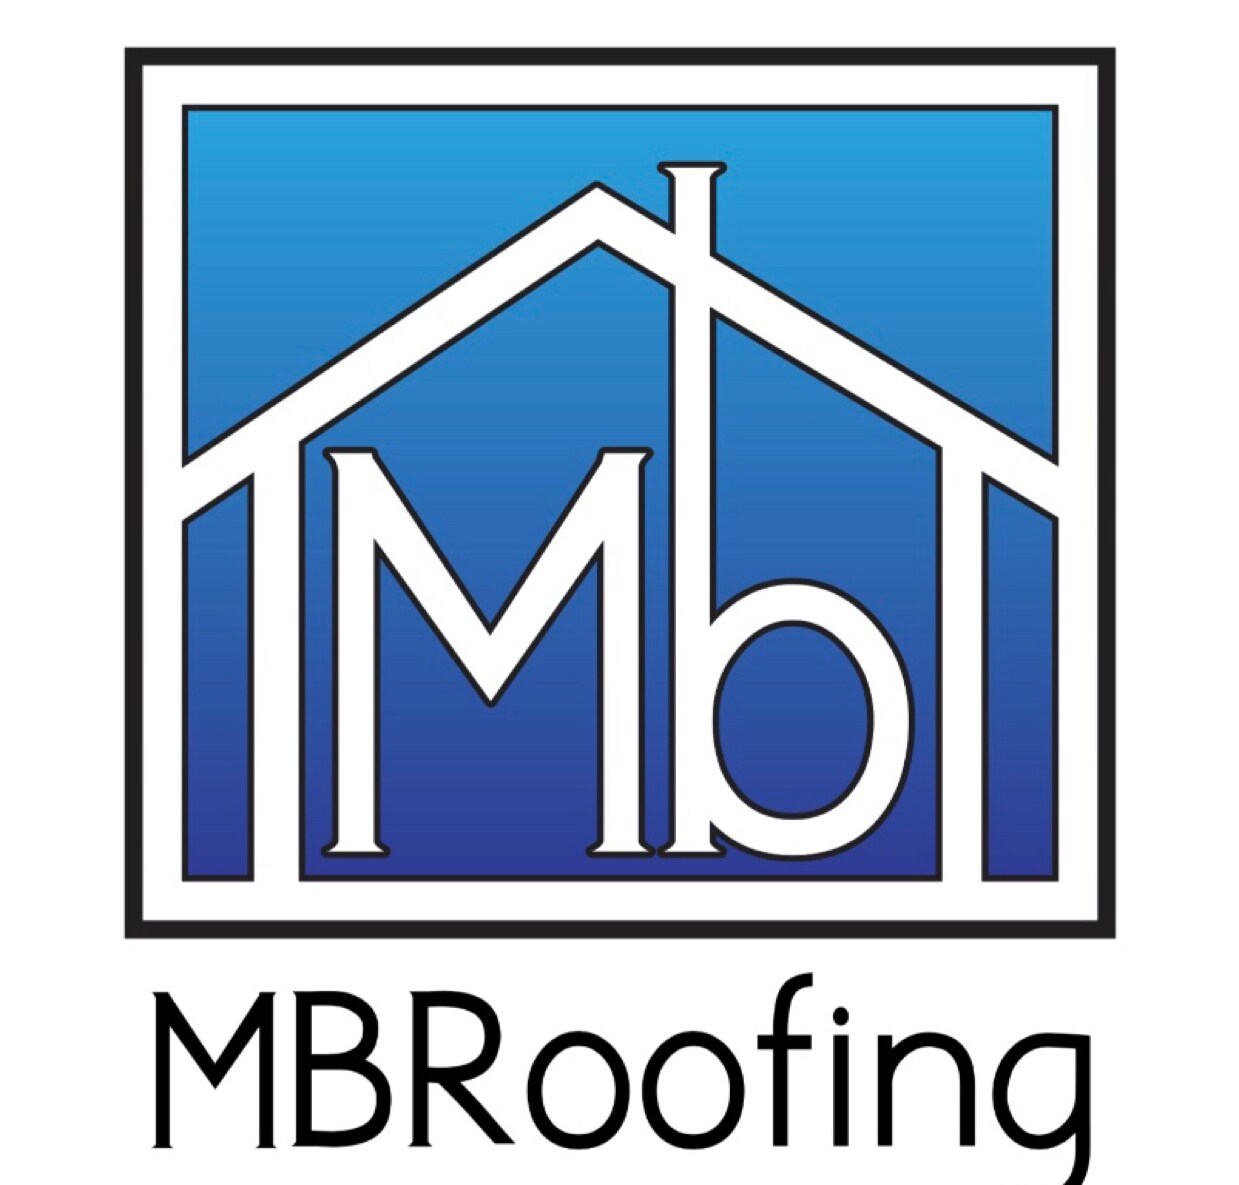 MBRoofing, PLLC